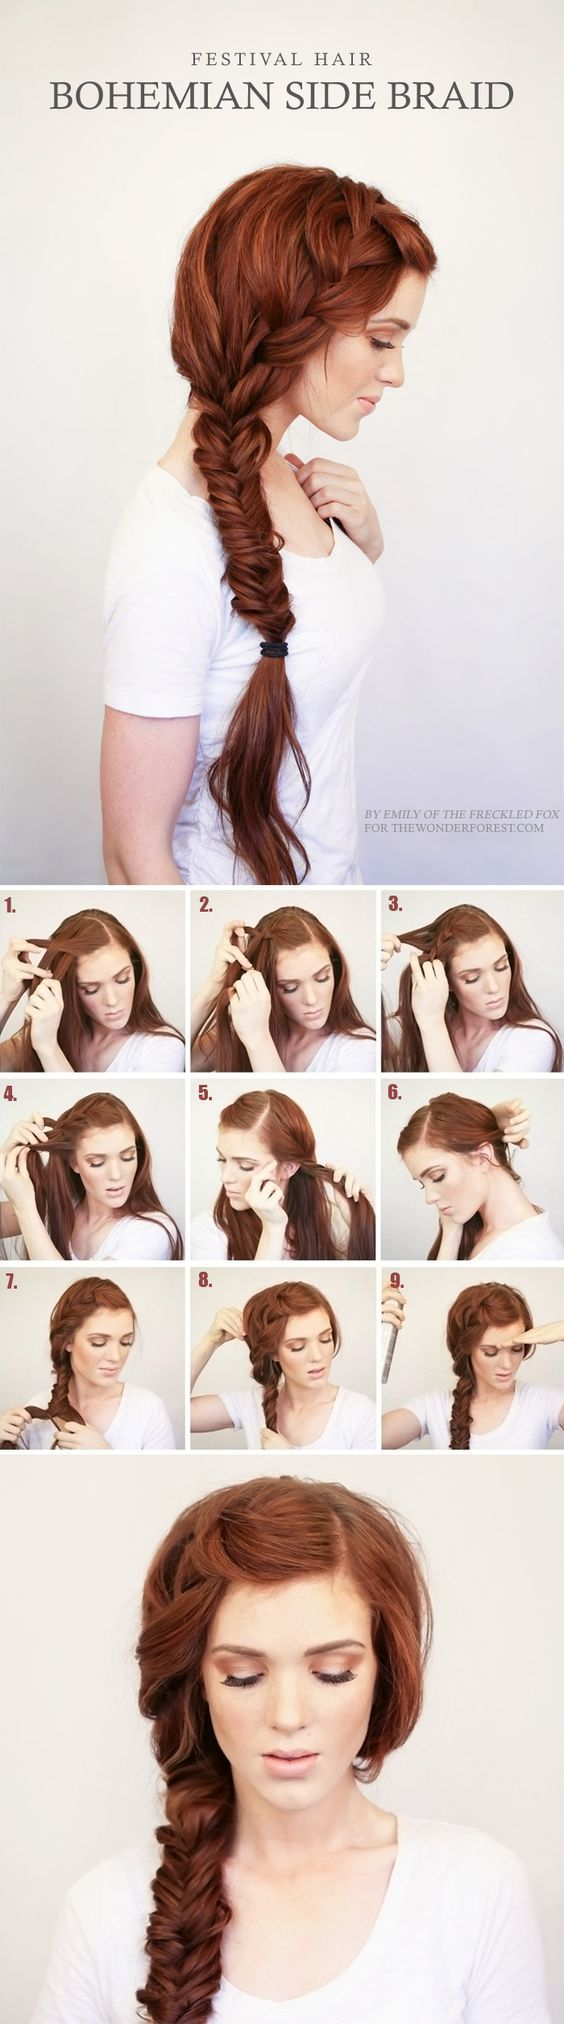 10 Easy And Cute Hair Tutorials For Any Occassion. These hairstyles are great for any occasion whether you just want quick and casual or simple yet elegant. Great for women with medium to long hair. Want no heat waves, a messy sock bun, or stylish braids? Look no further.